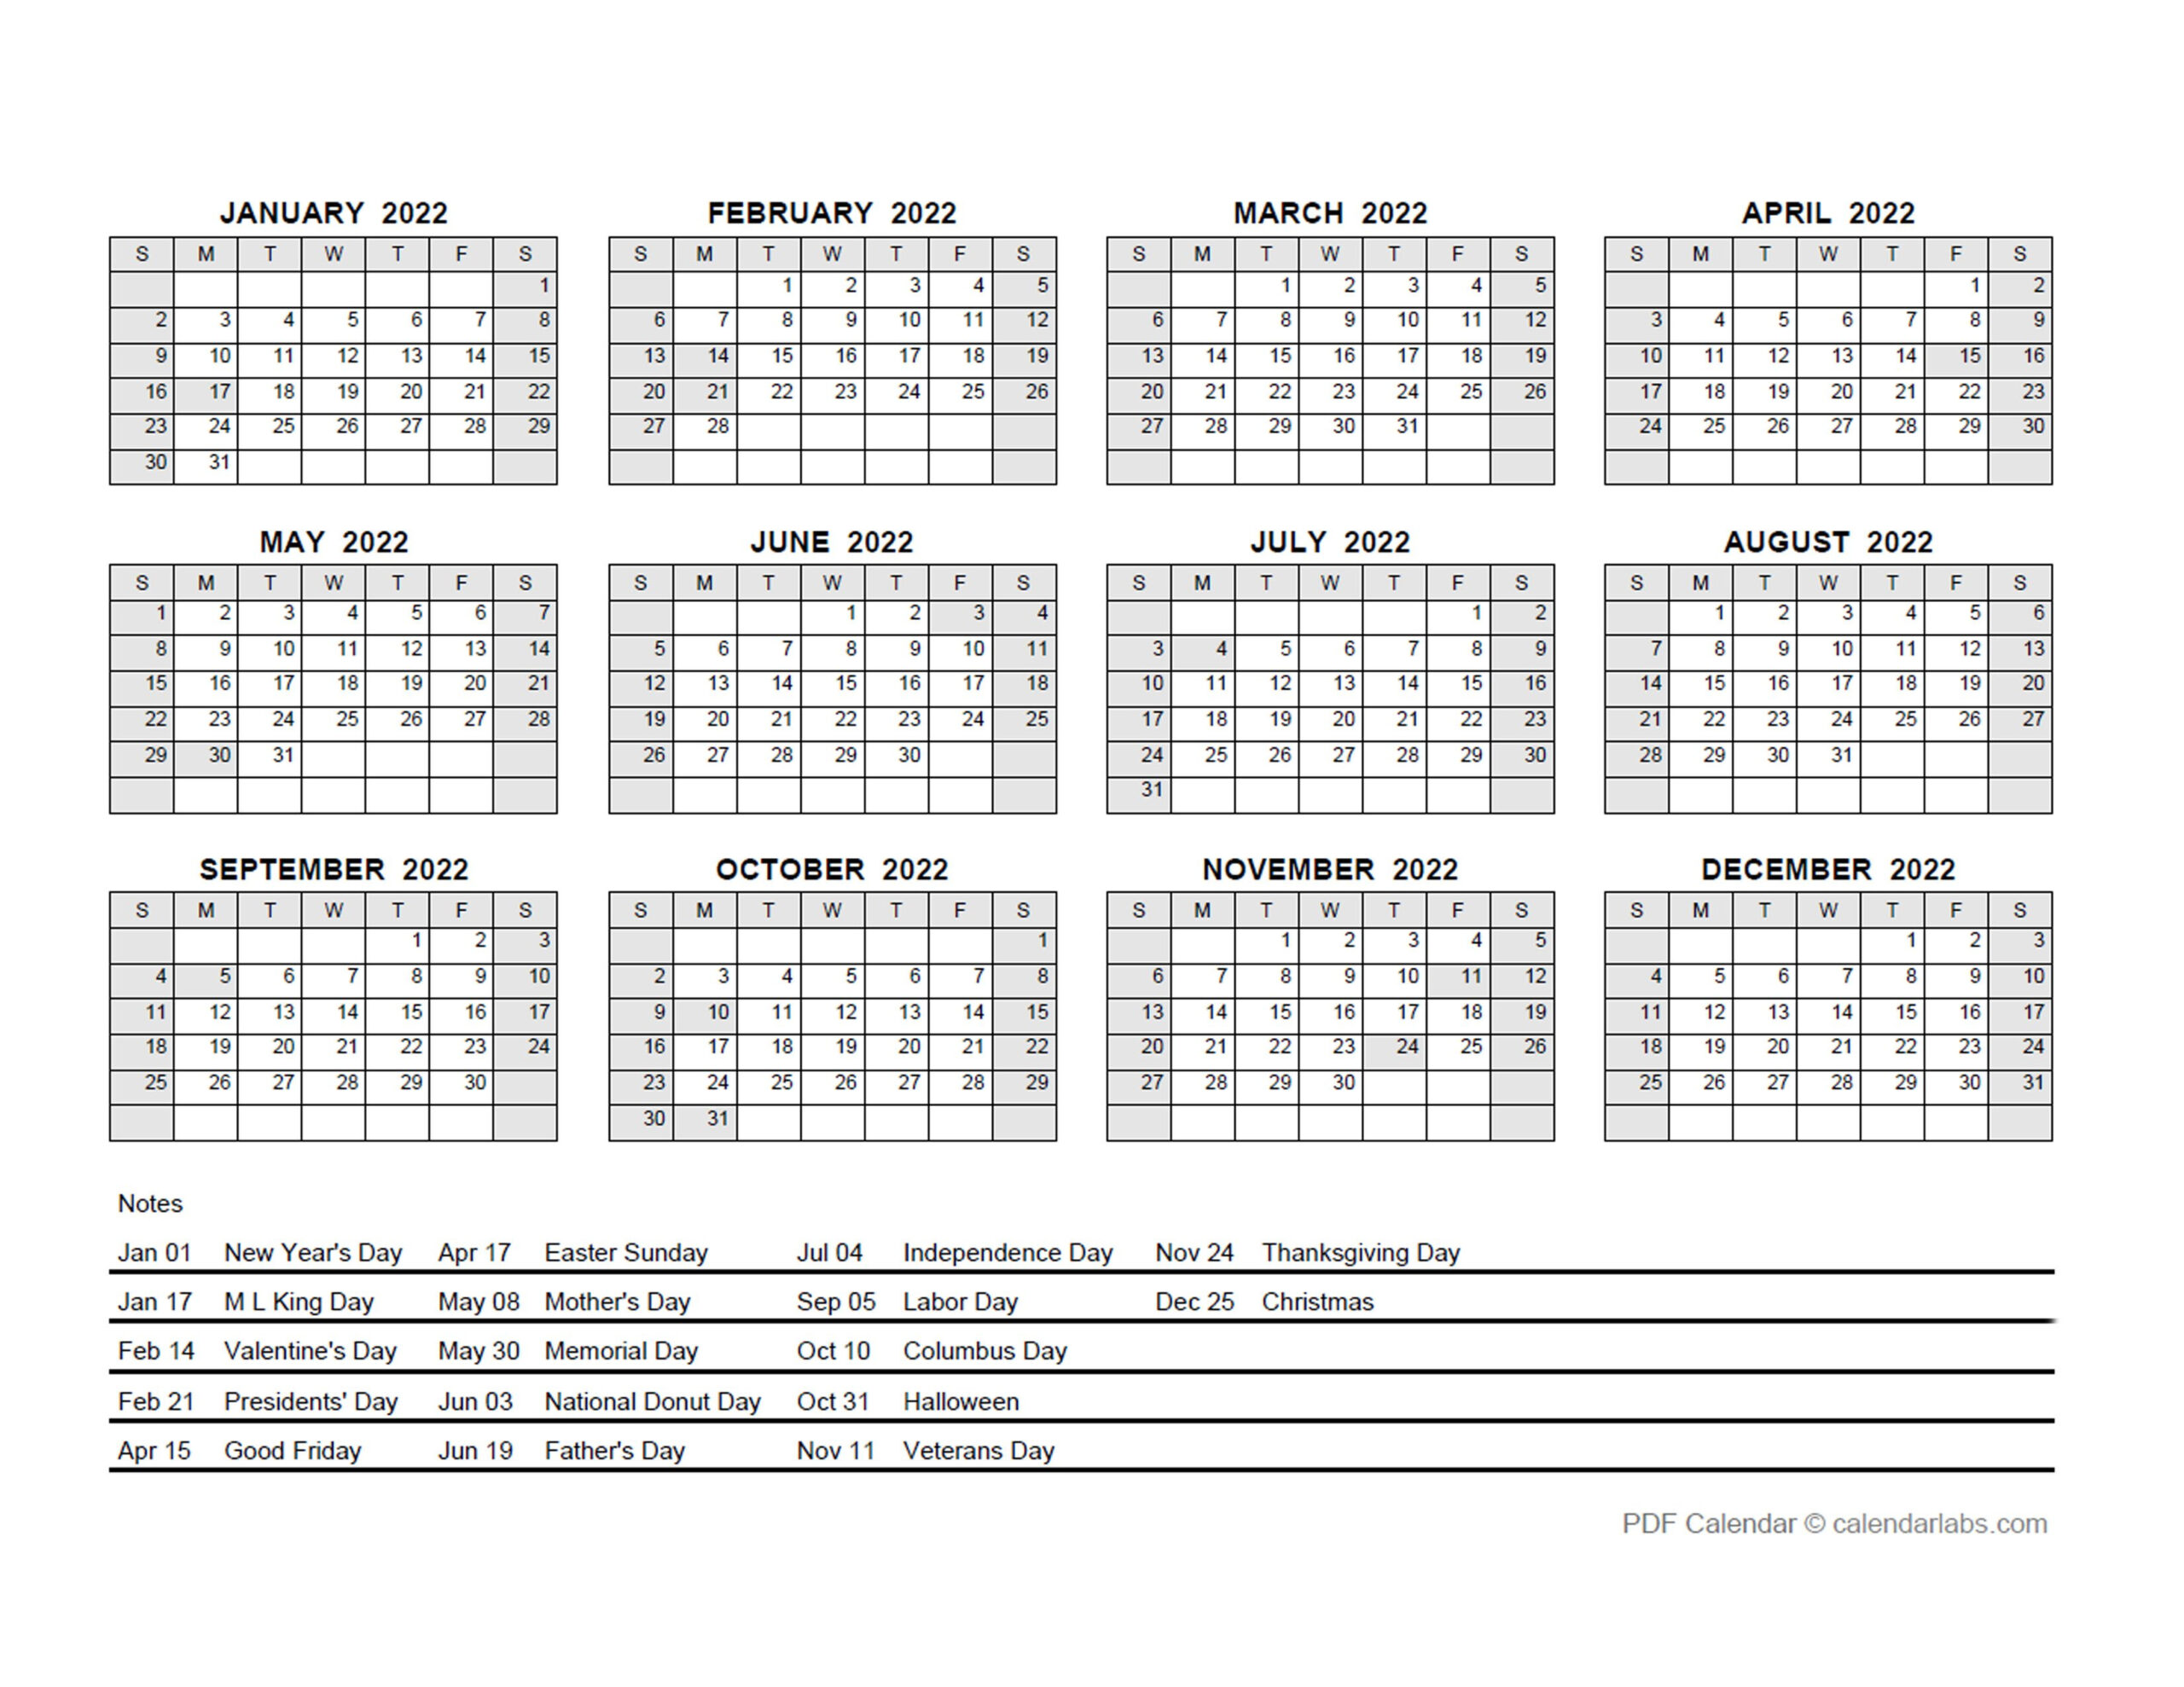 2022 Pdf Yearly Calendar With Holidays - Free Printable within Free Printable 2022 Planner With Holidays Graphics